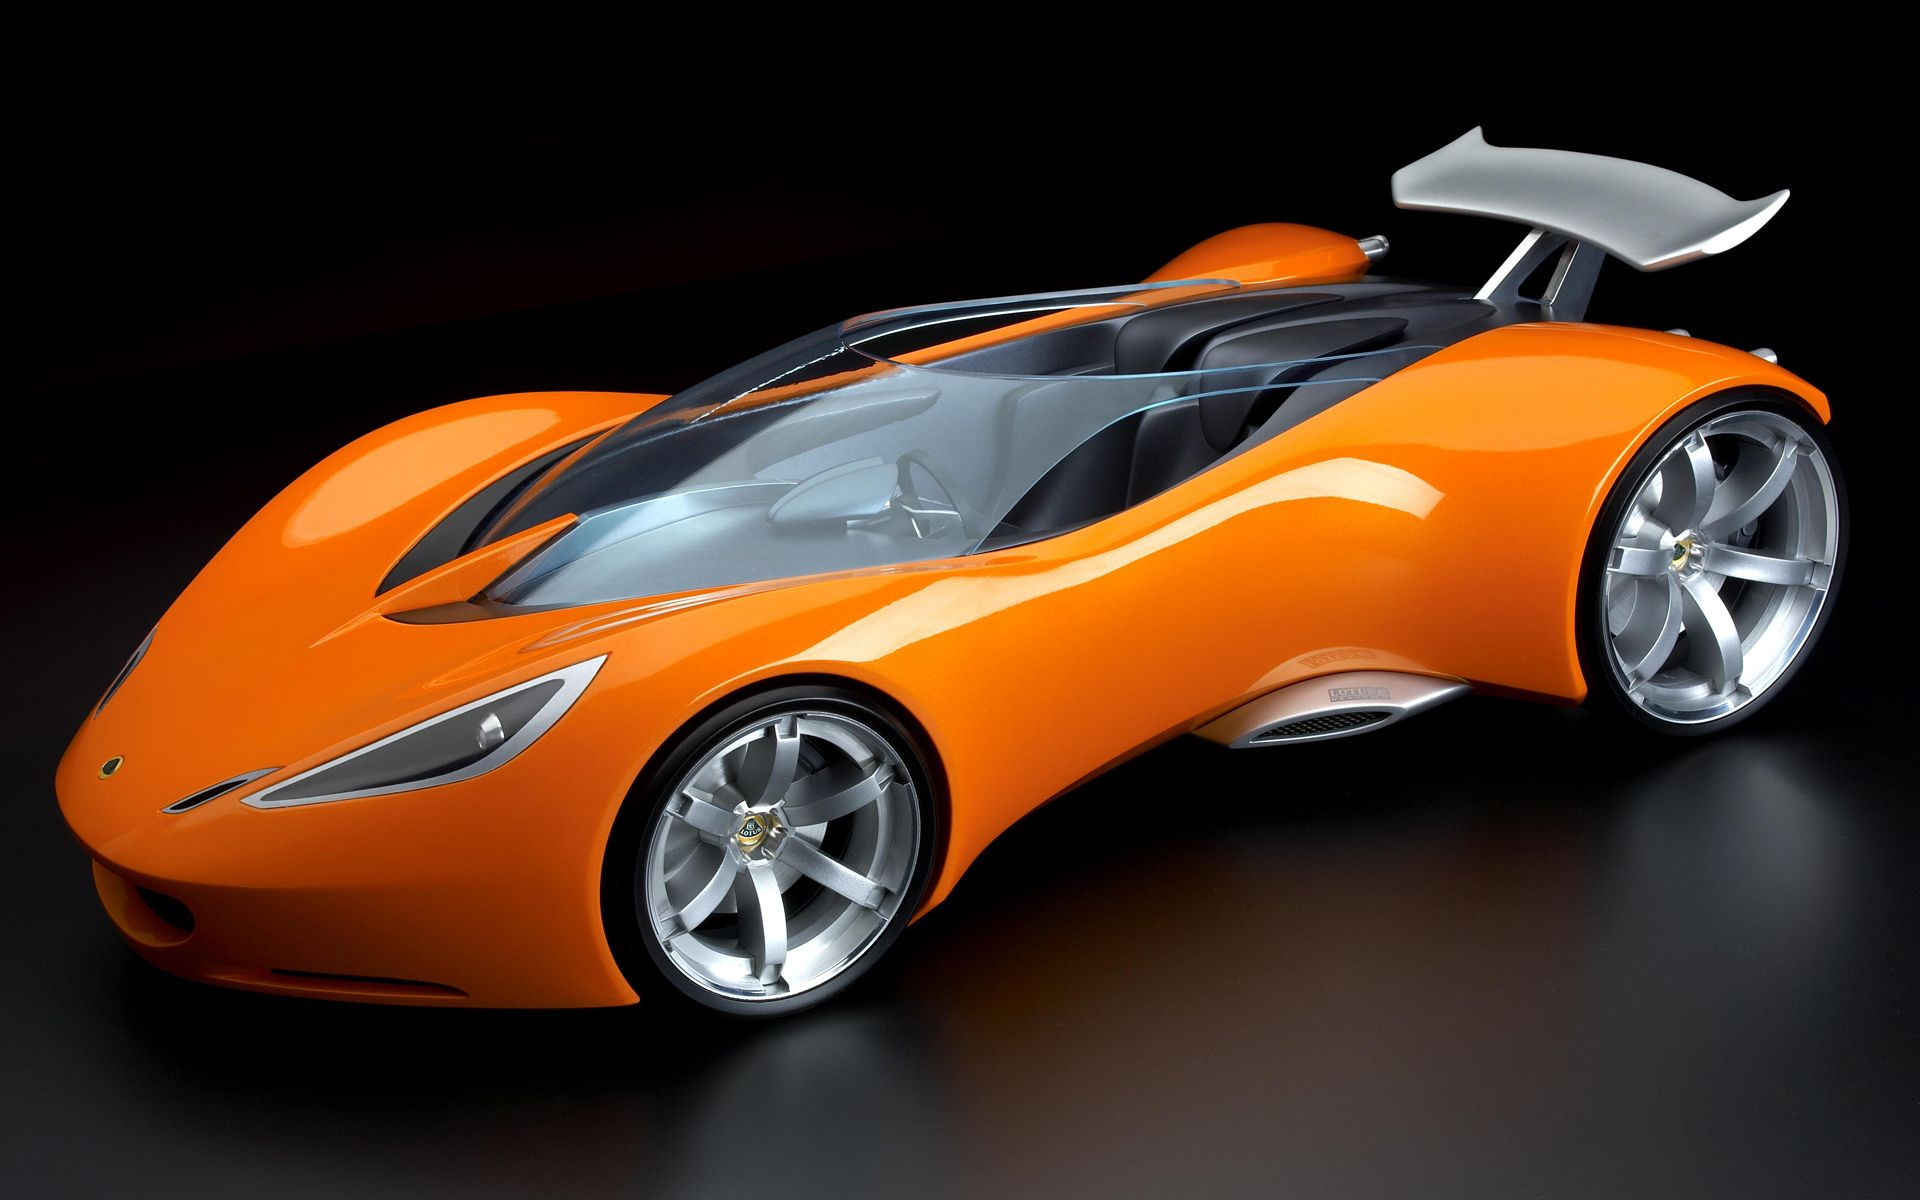 Lotus Crazy Concept 766.16 Kb